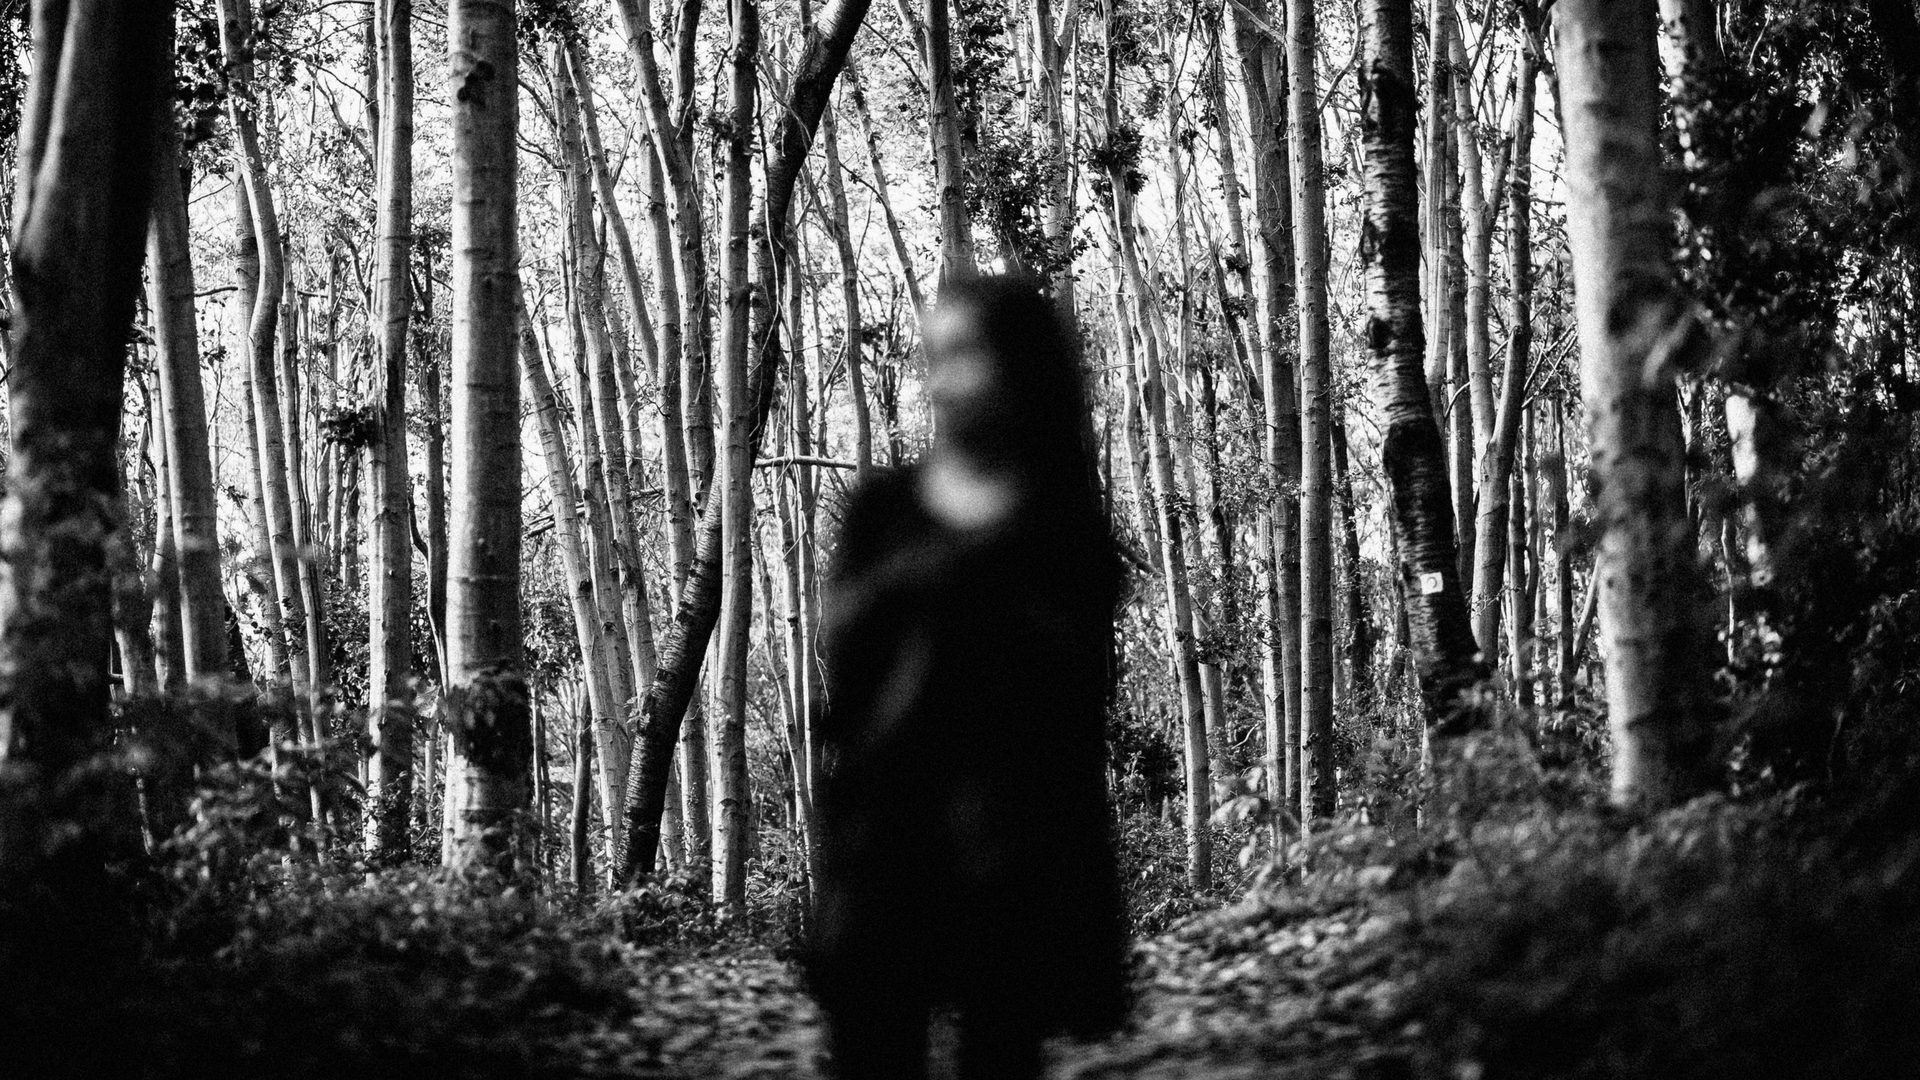 My Paranormal Experiences – Does The Afterlife Exist?